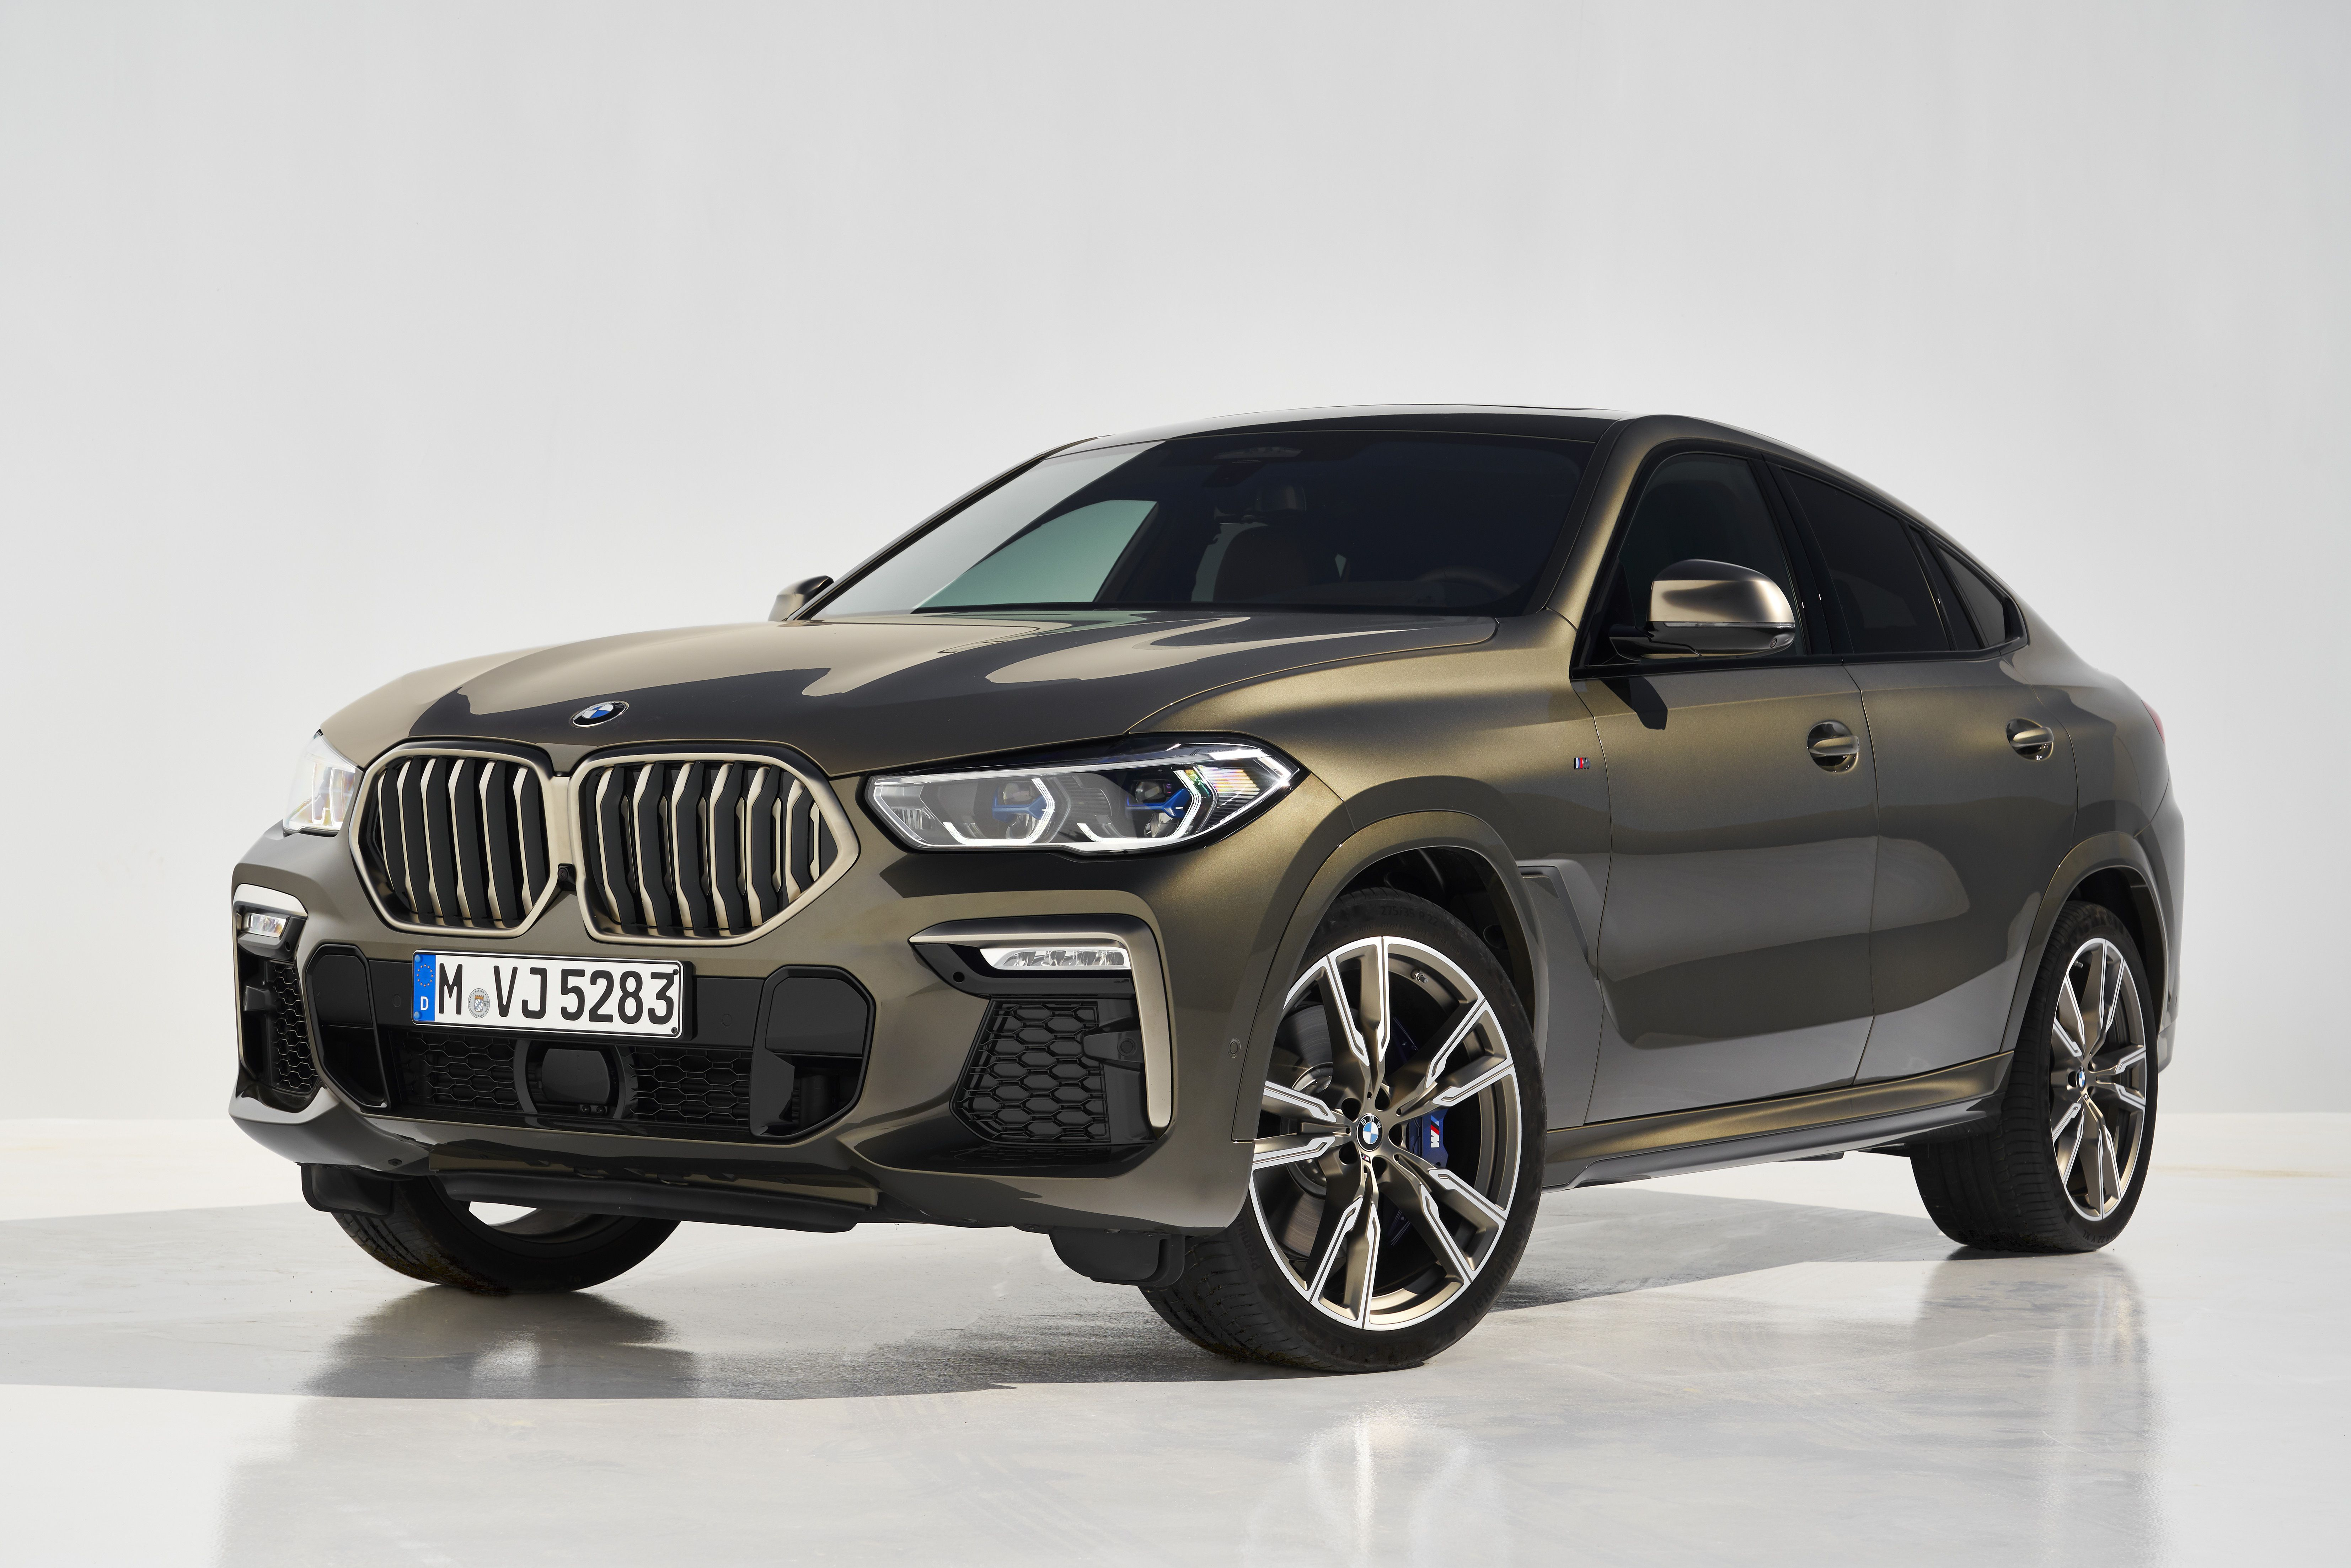 The 2020 Bmw X6 Is Bigger Quicker And Still Ridiculous Bmw X6 New Bmw Sport Suv